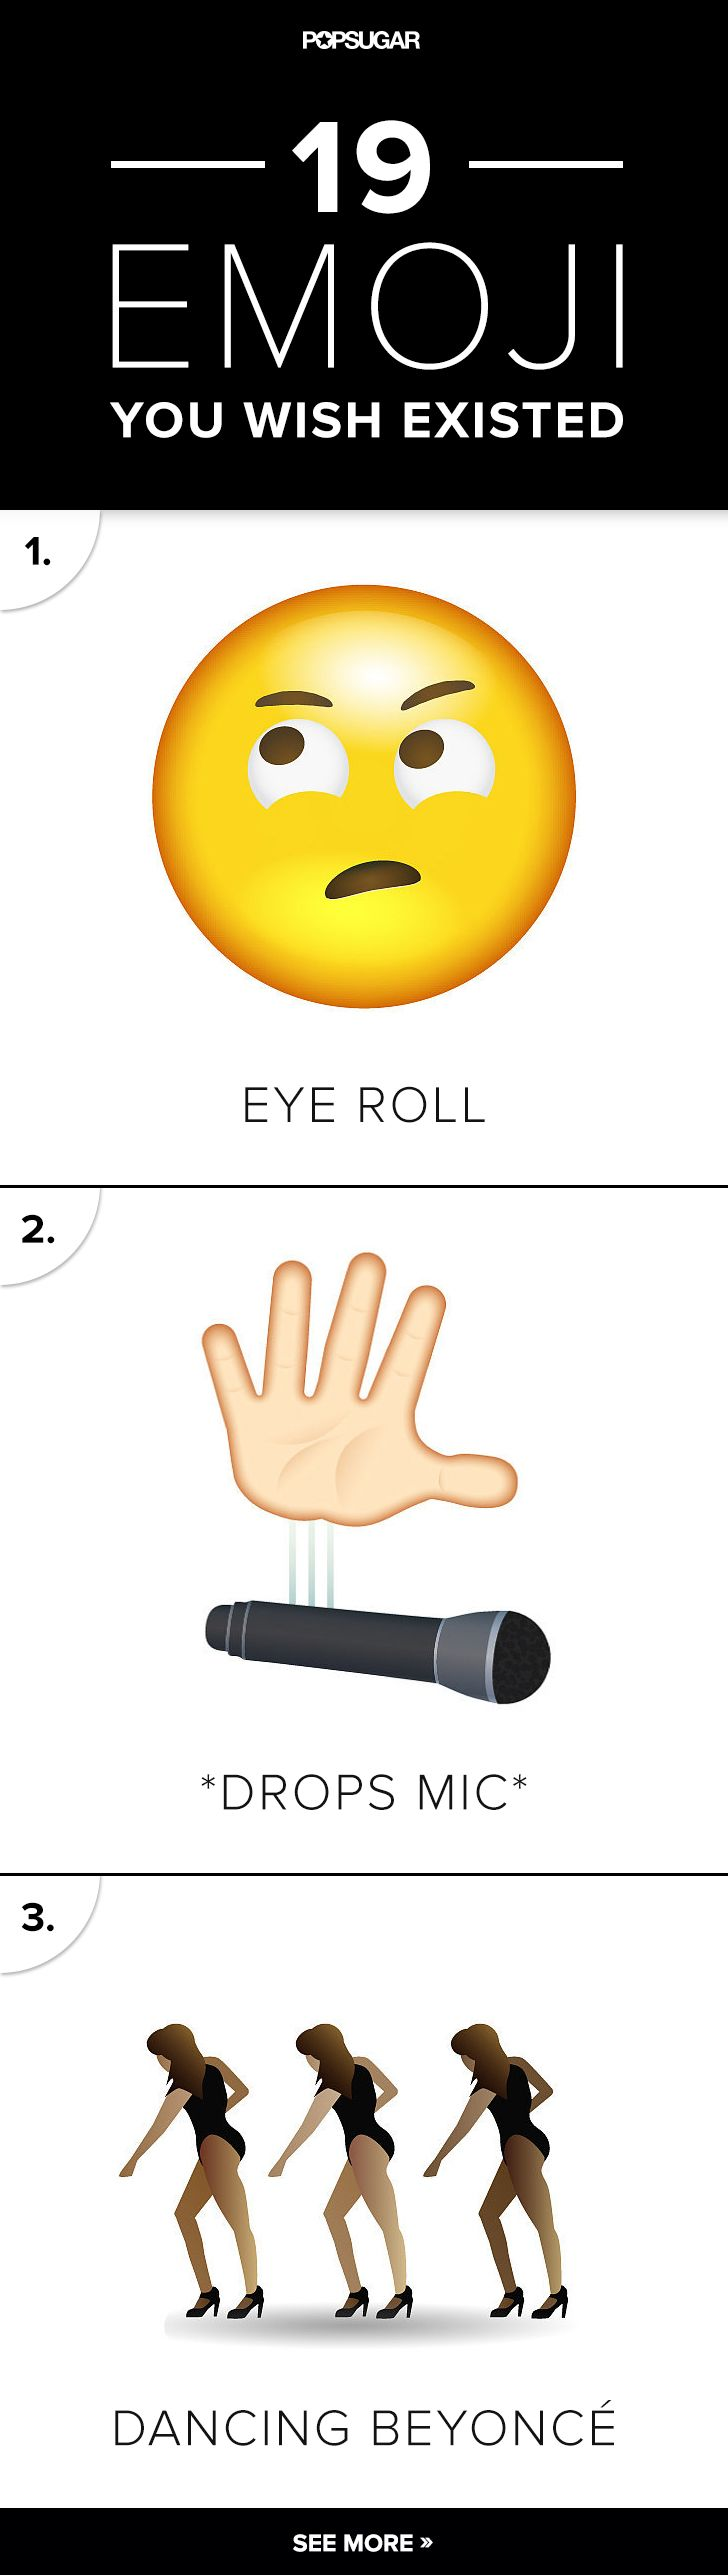 The mic drop emoji is essential.